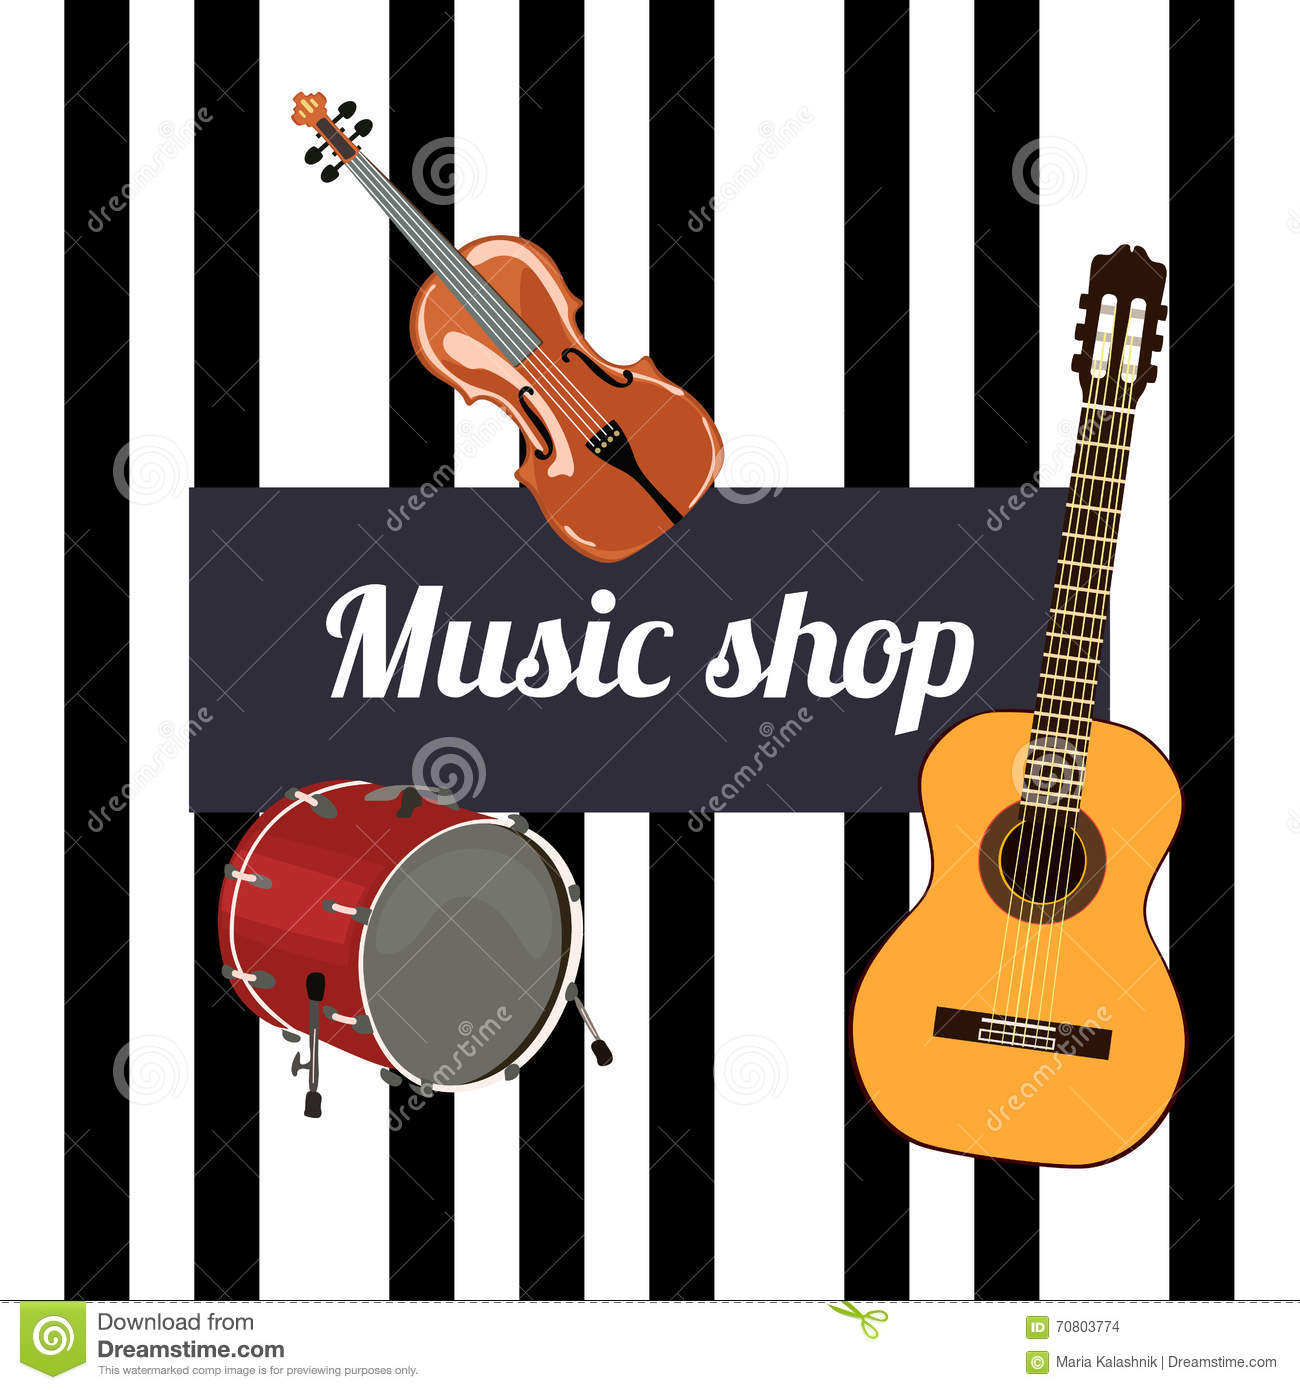 Music shop Sign  stock vector  Illustration of lettering